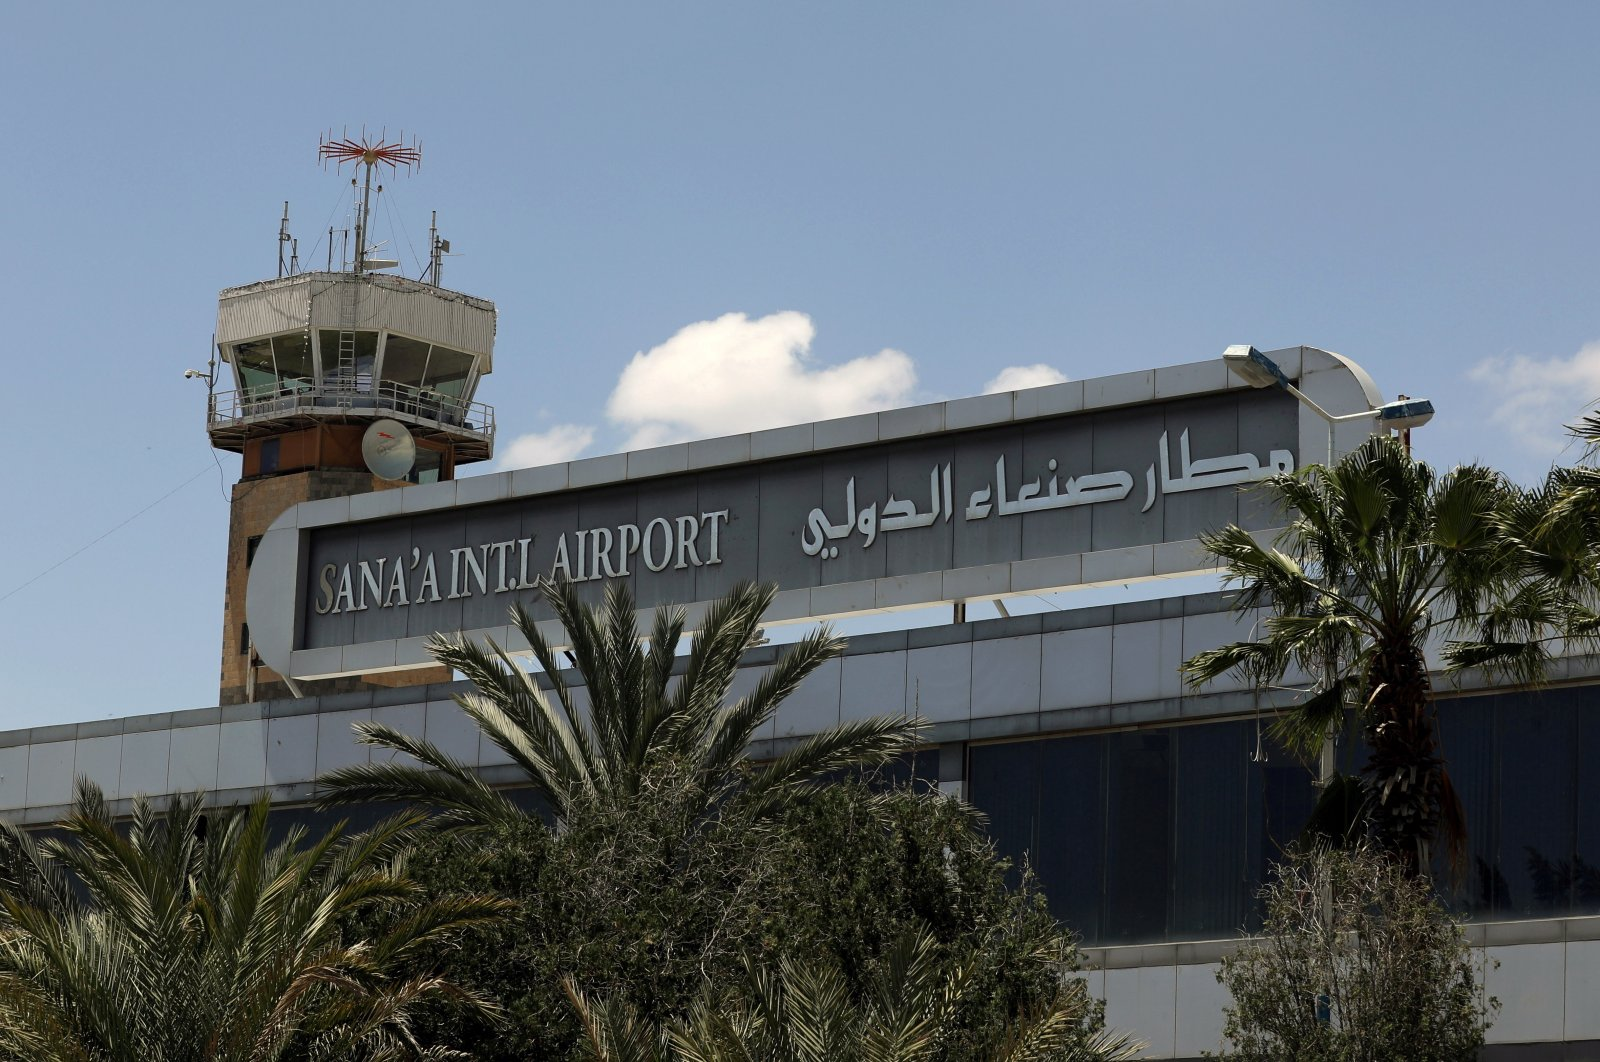 A view shows the tower of Sanaa airport in Sanaa, Yemen, Sept. 8, 2020. (Reuters Photo)